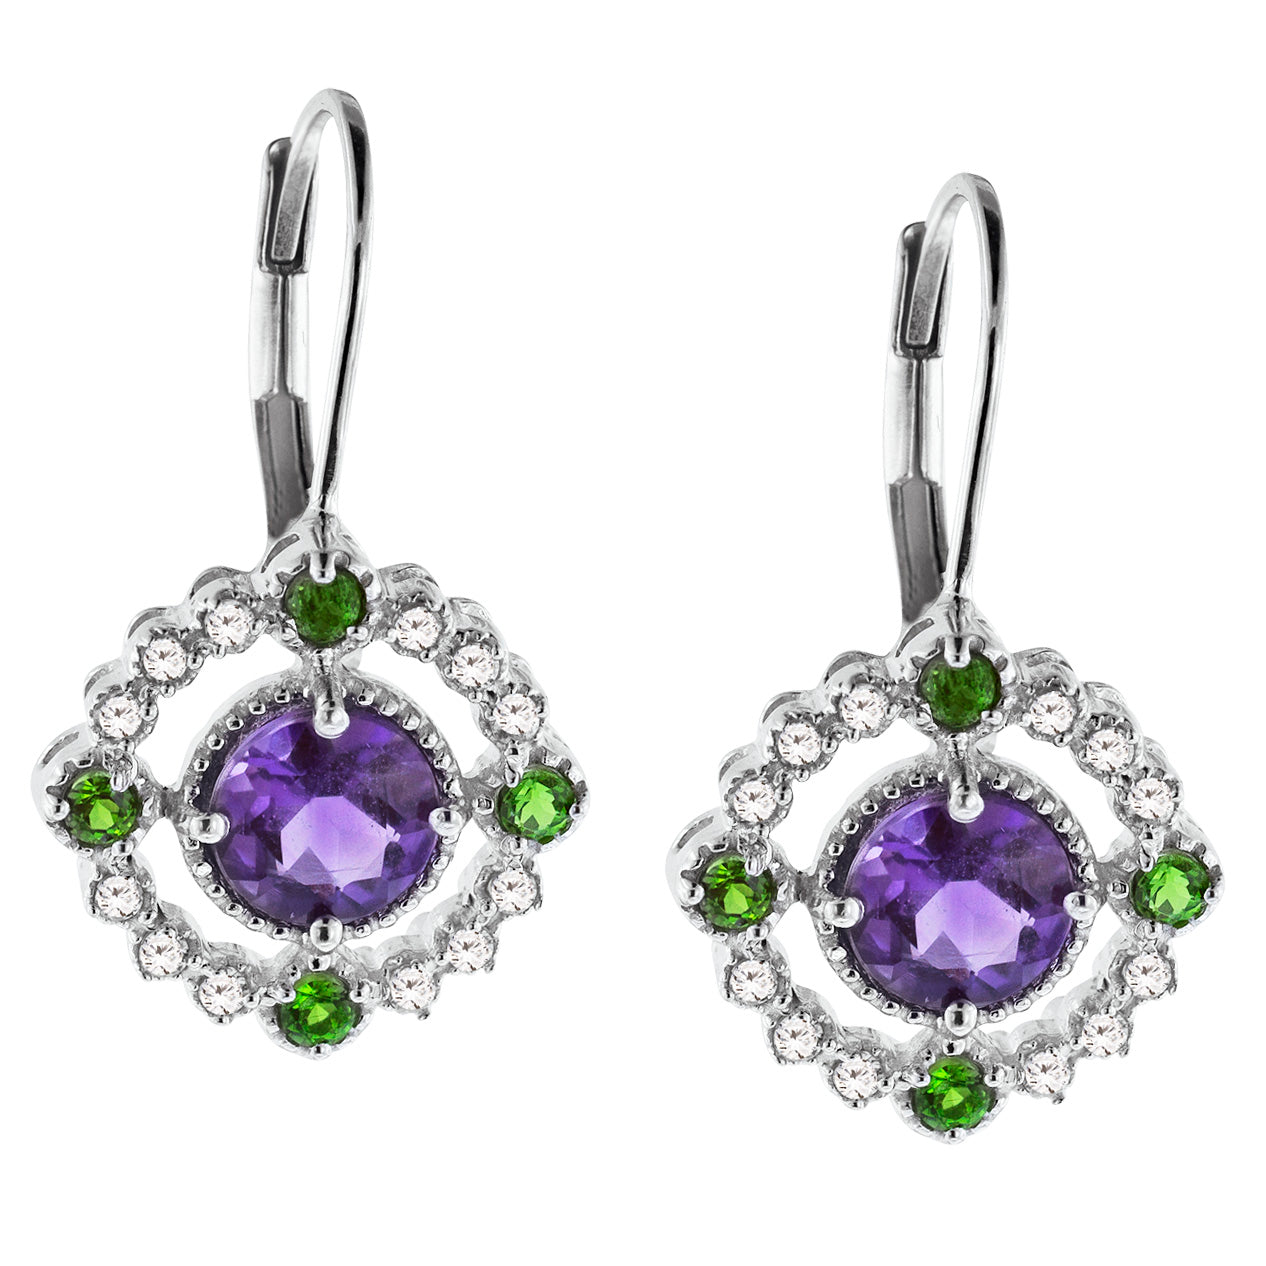 Gemstone Drop Earring with White Zircon Accented Halo